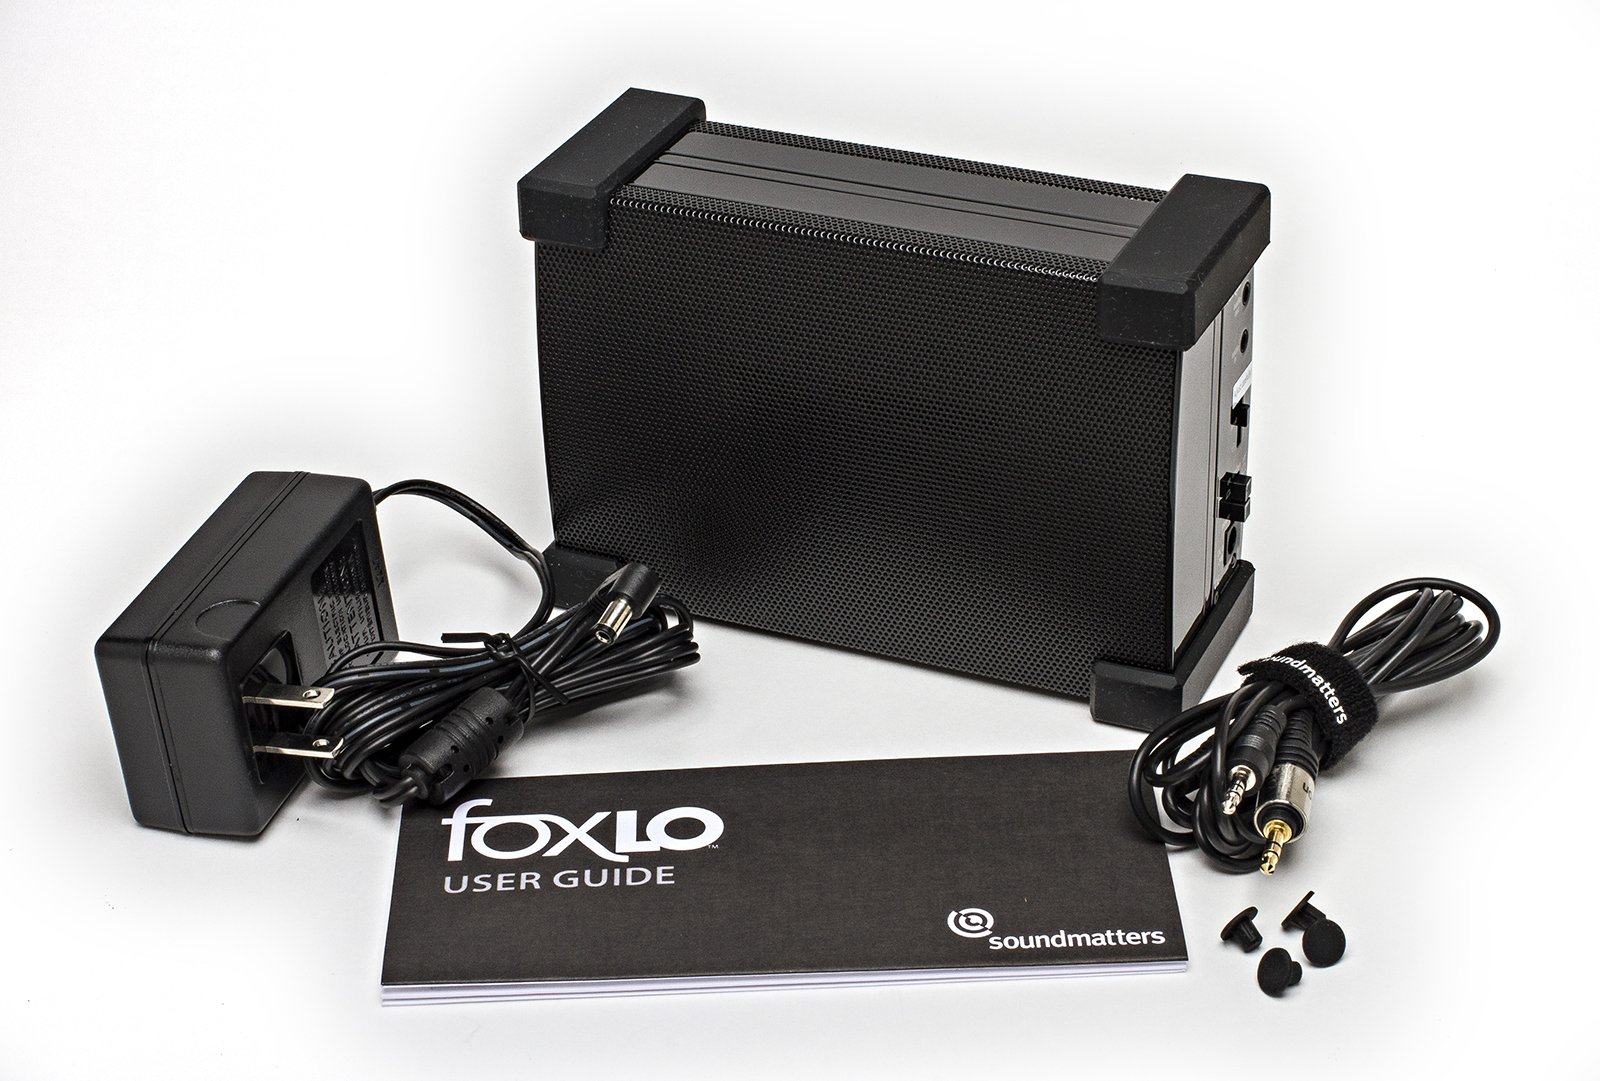 Soundmatters foxLO Palm-Sized Powered Subwoofer - US Version (Black)